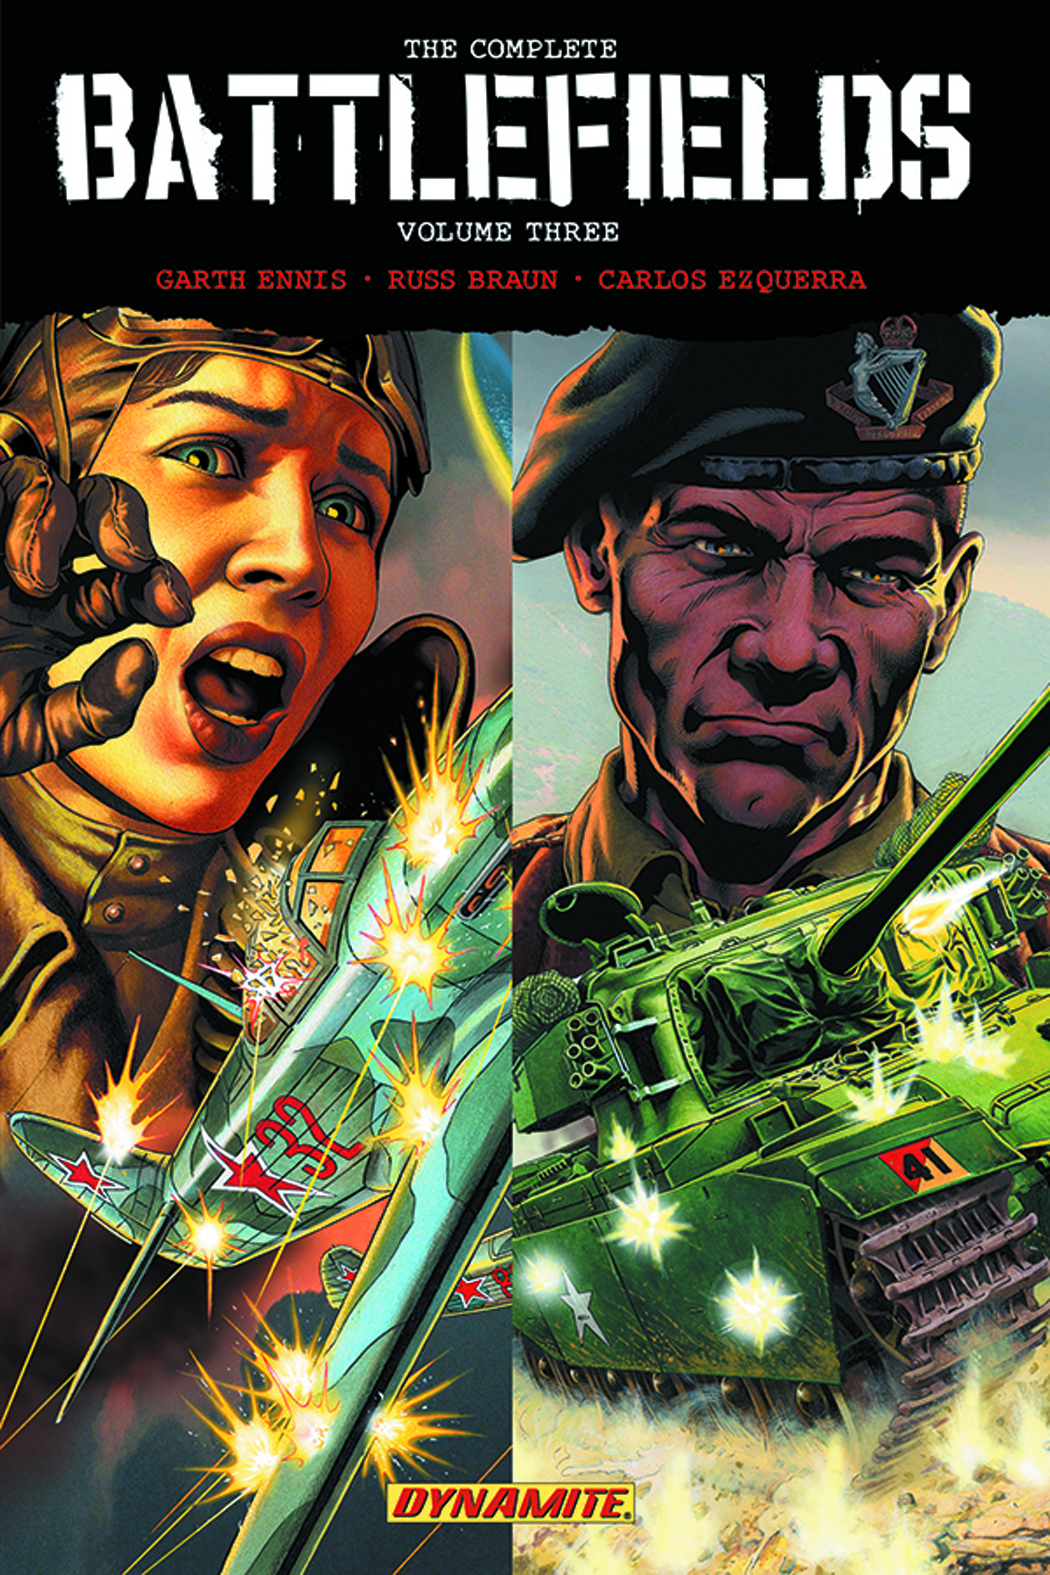 GARTH ENNIS COMP BATTLEFIELDS HC VOL 03